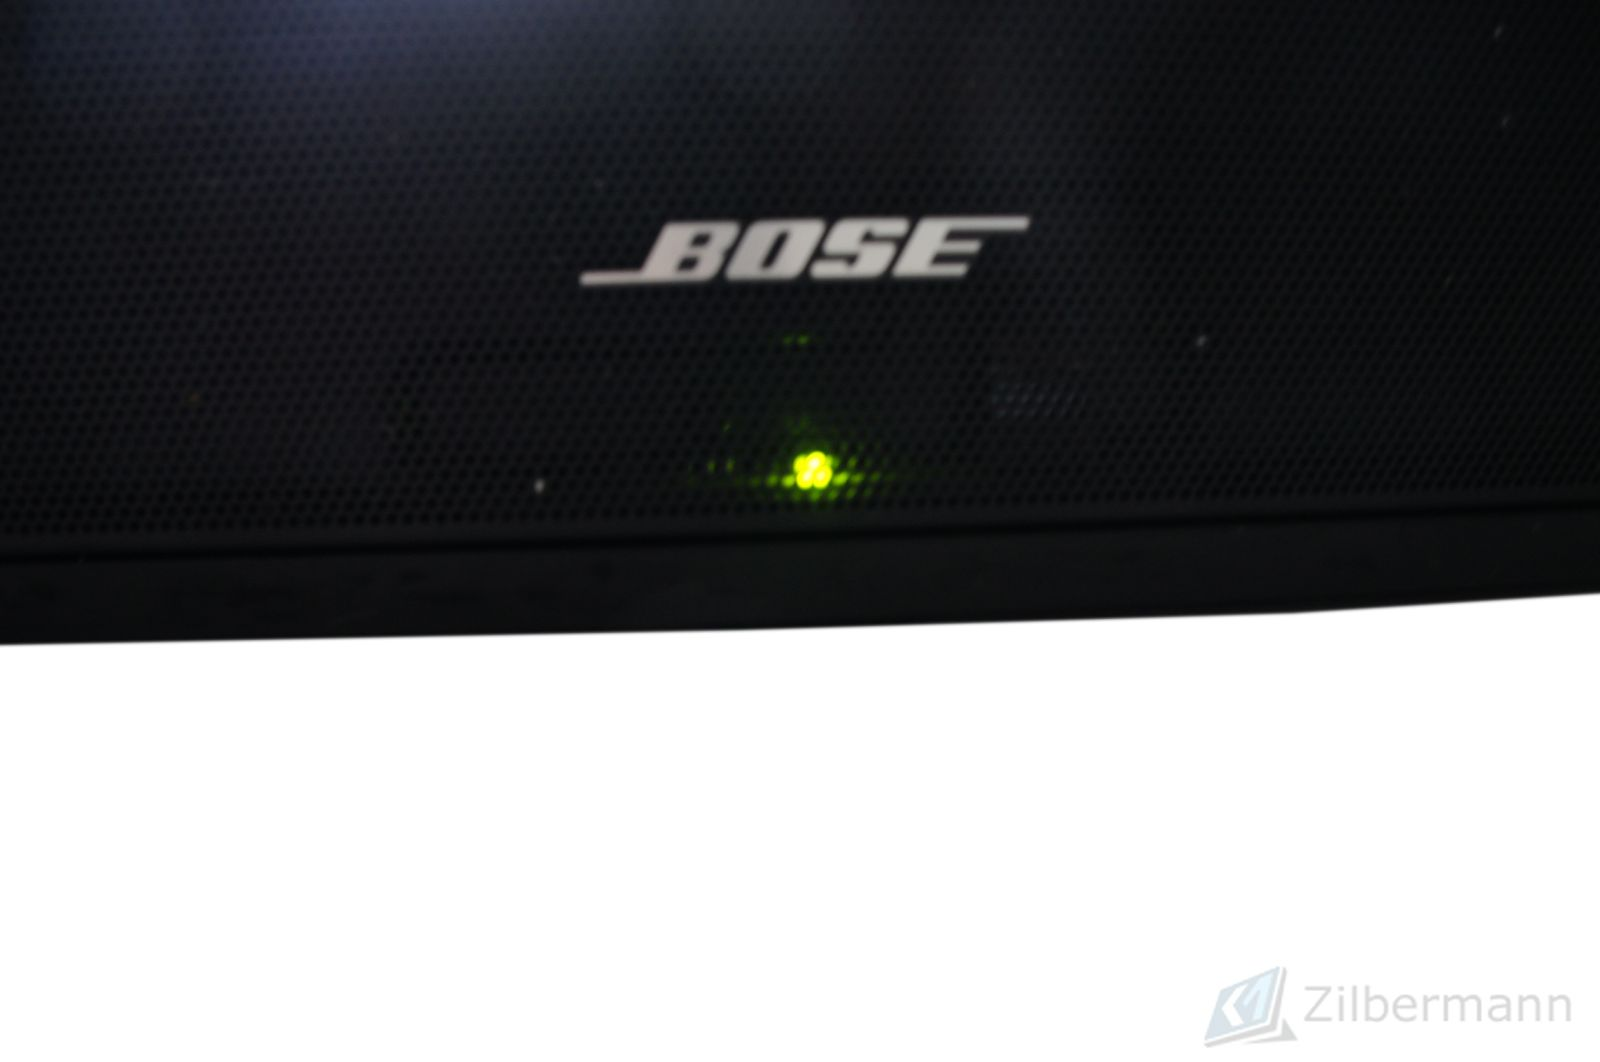 Bose_Solo_TV_sound_system_02